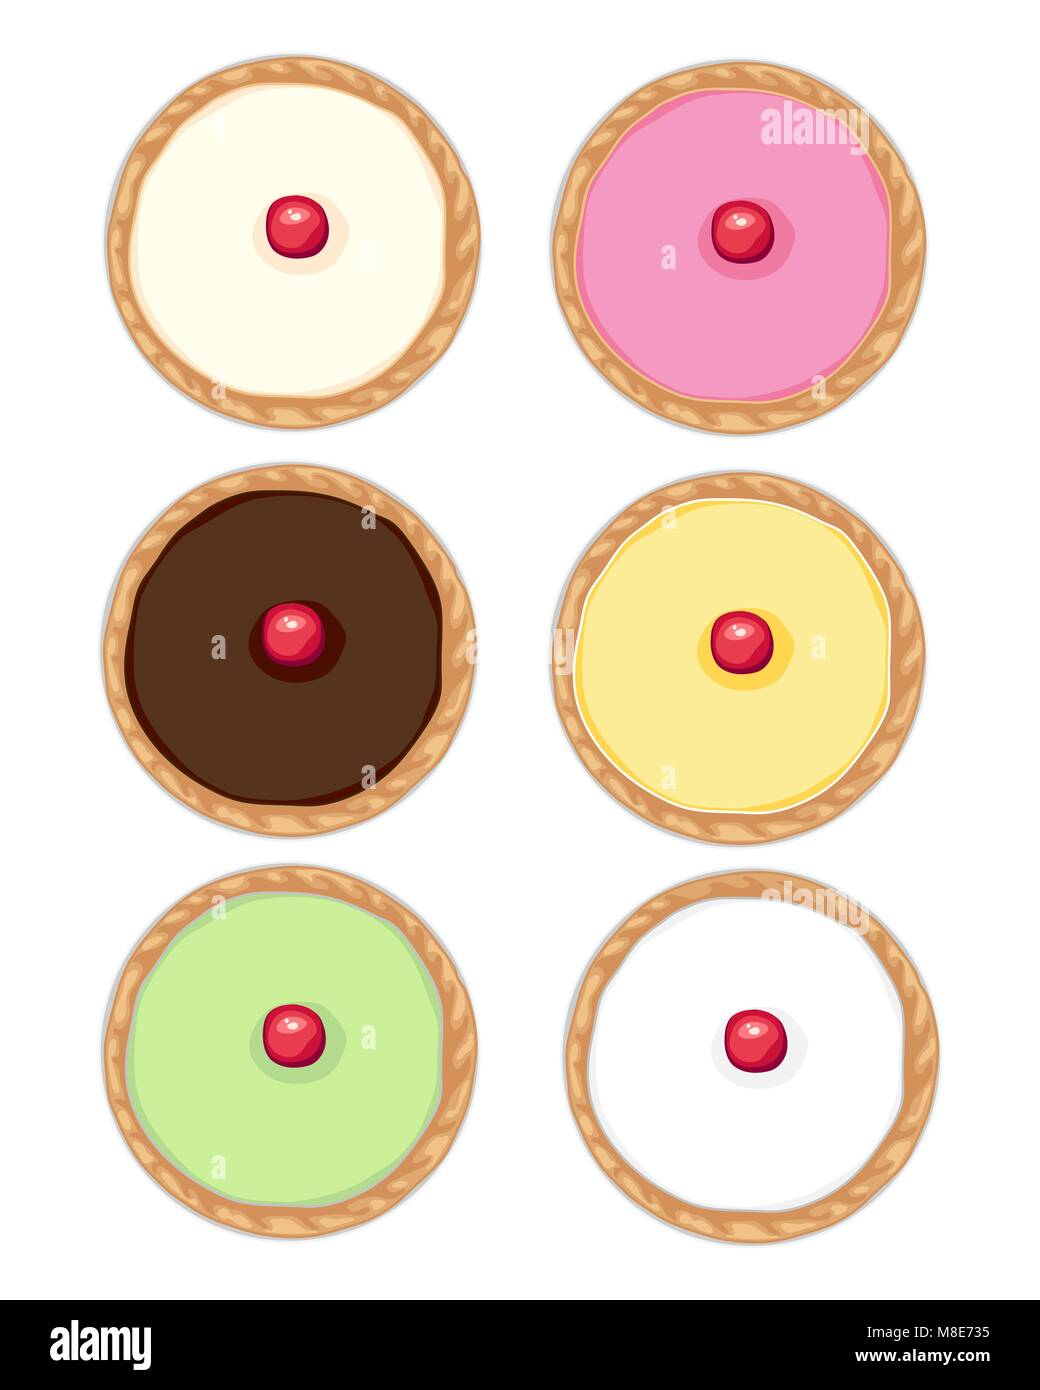 a vector illustration in eps format of six cakes with fondant icing and cherry with golden crust in different colors - Stock Vector